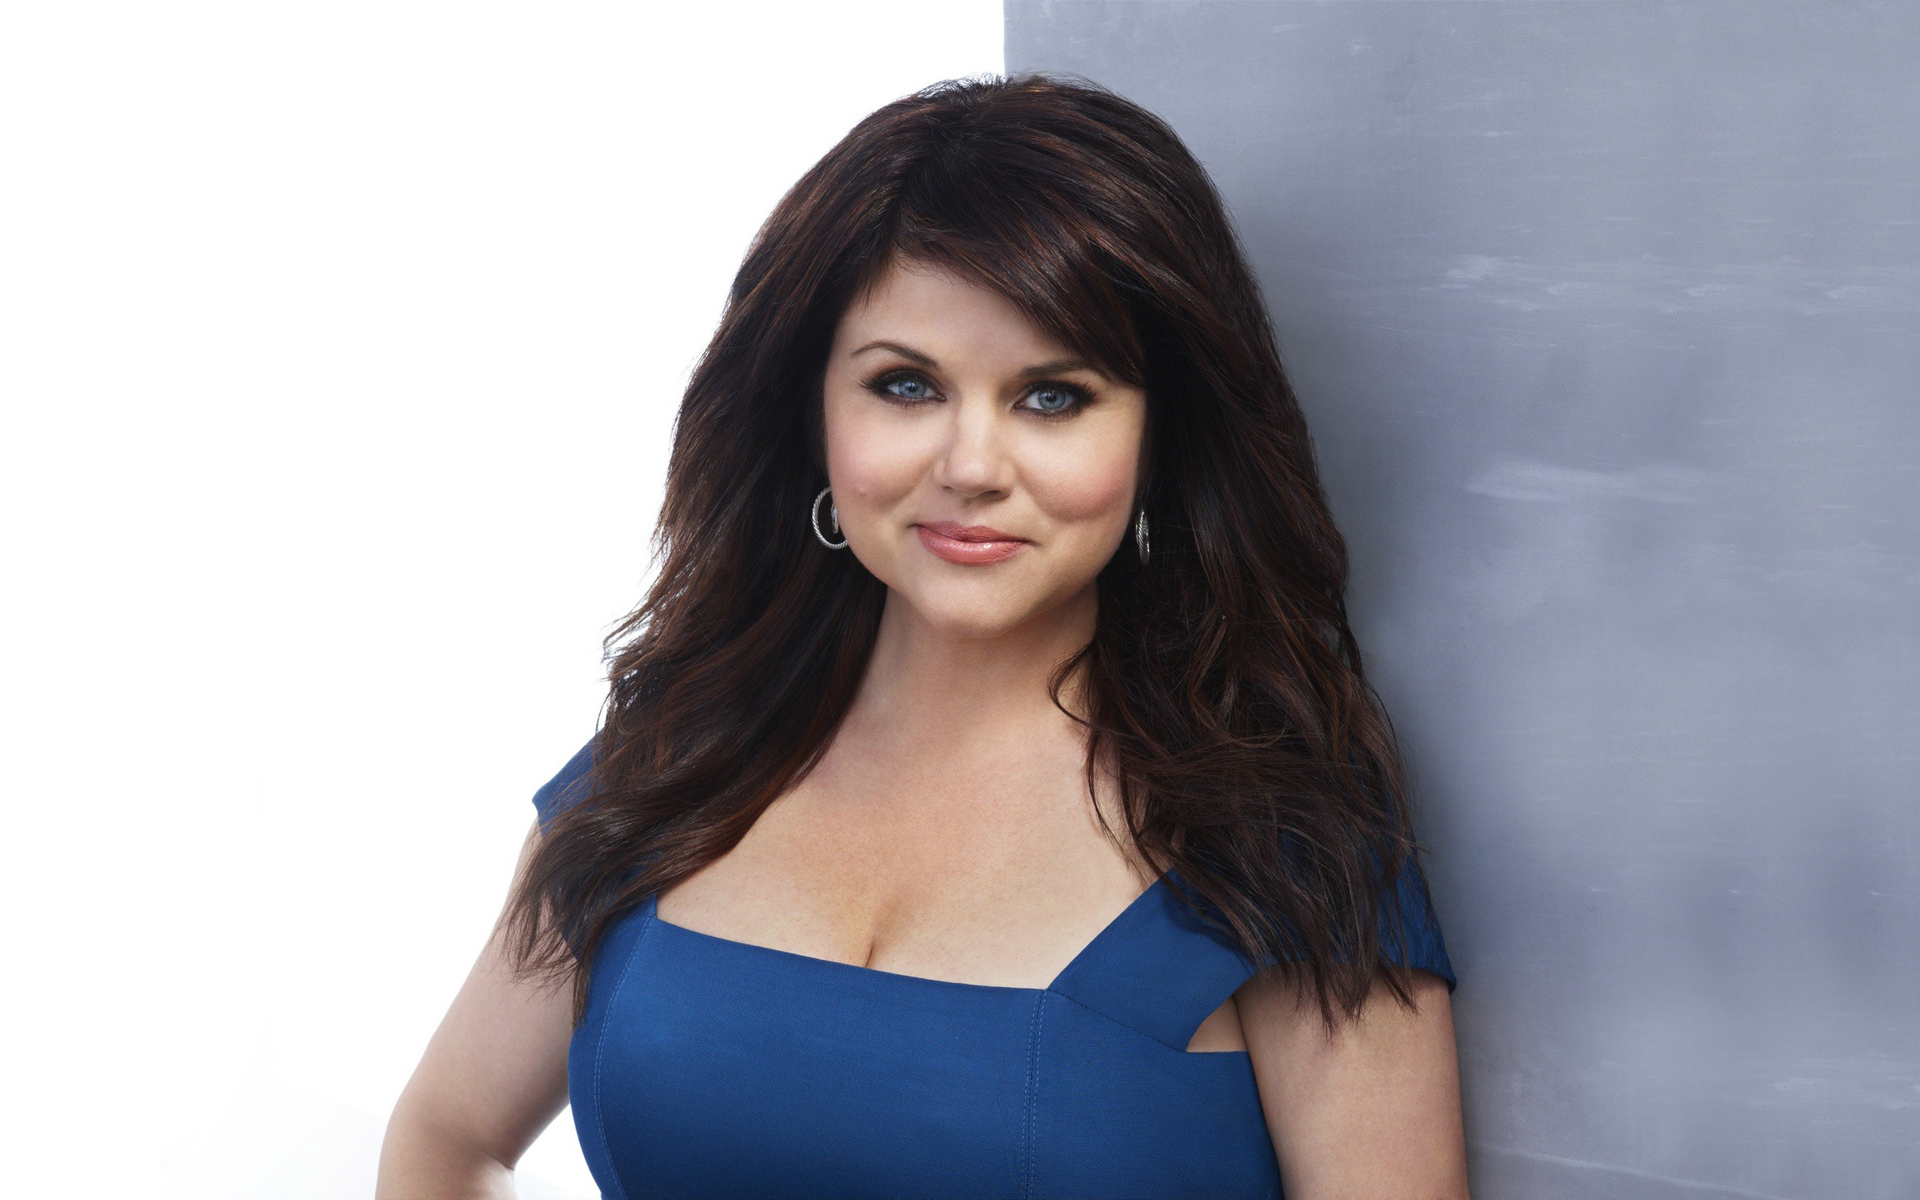 Video Tiffani-Amber Thiessen nudes (44 photos), Ass, Paparazzi, Instagram, lingerie 2019